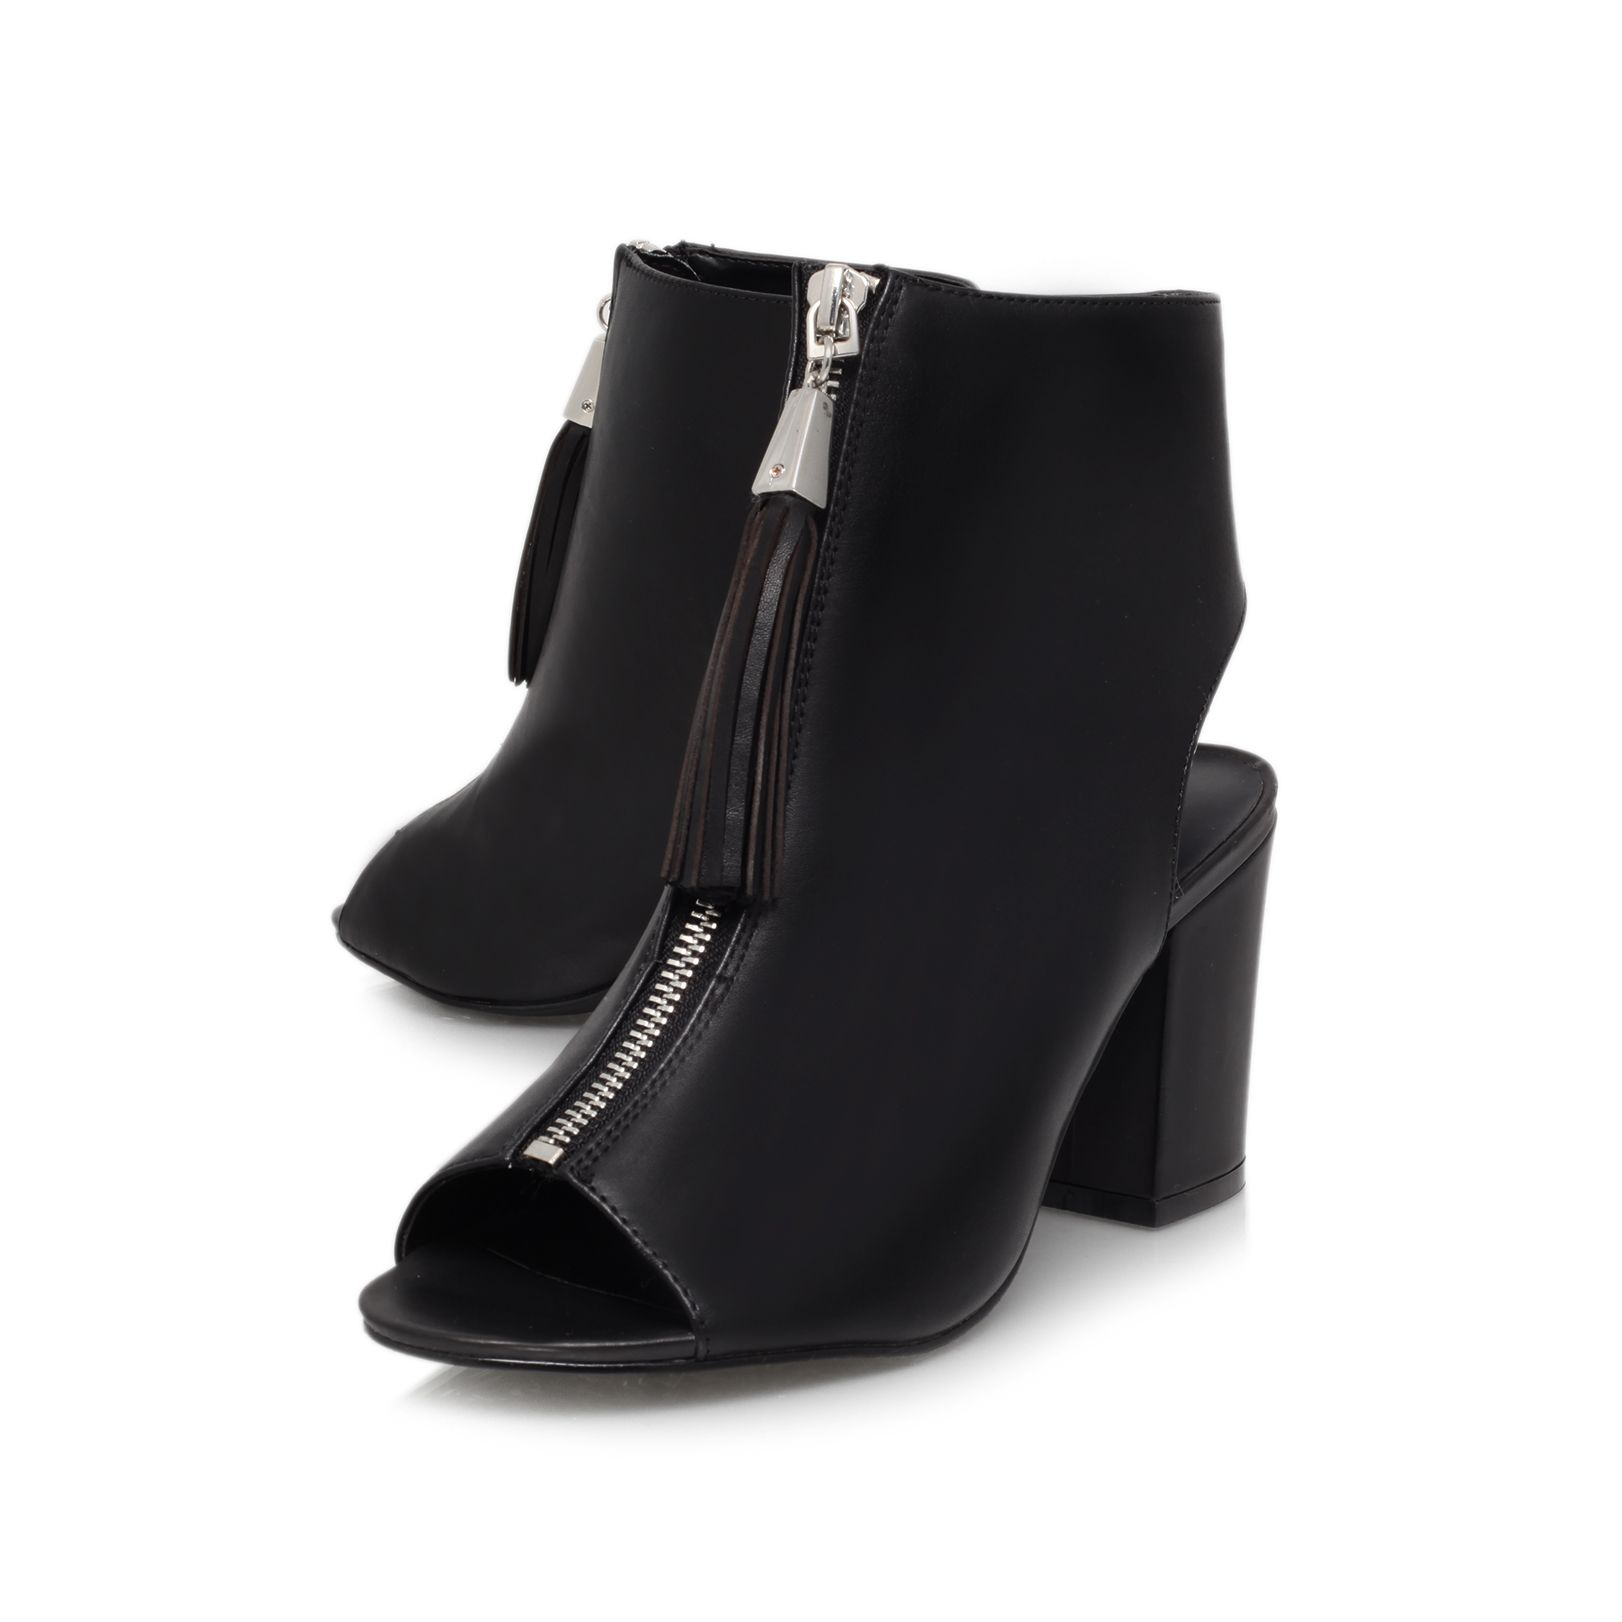 Seville Low Heeled Boots